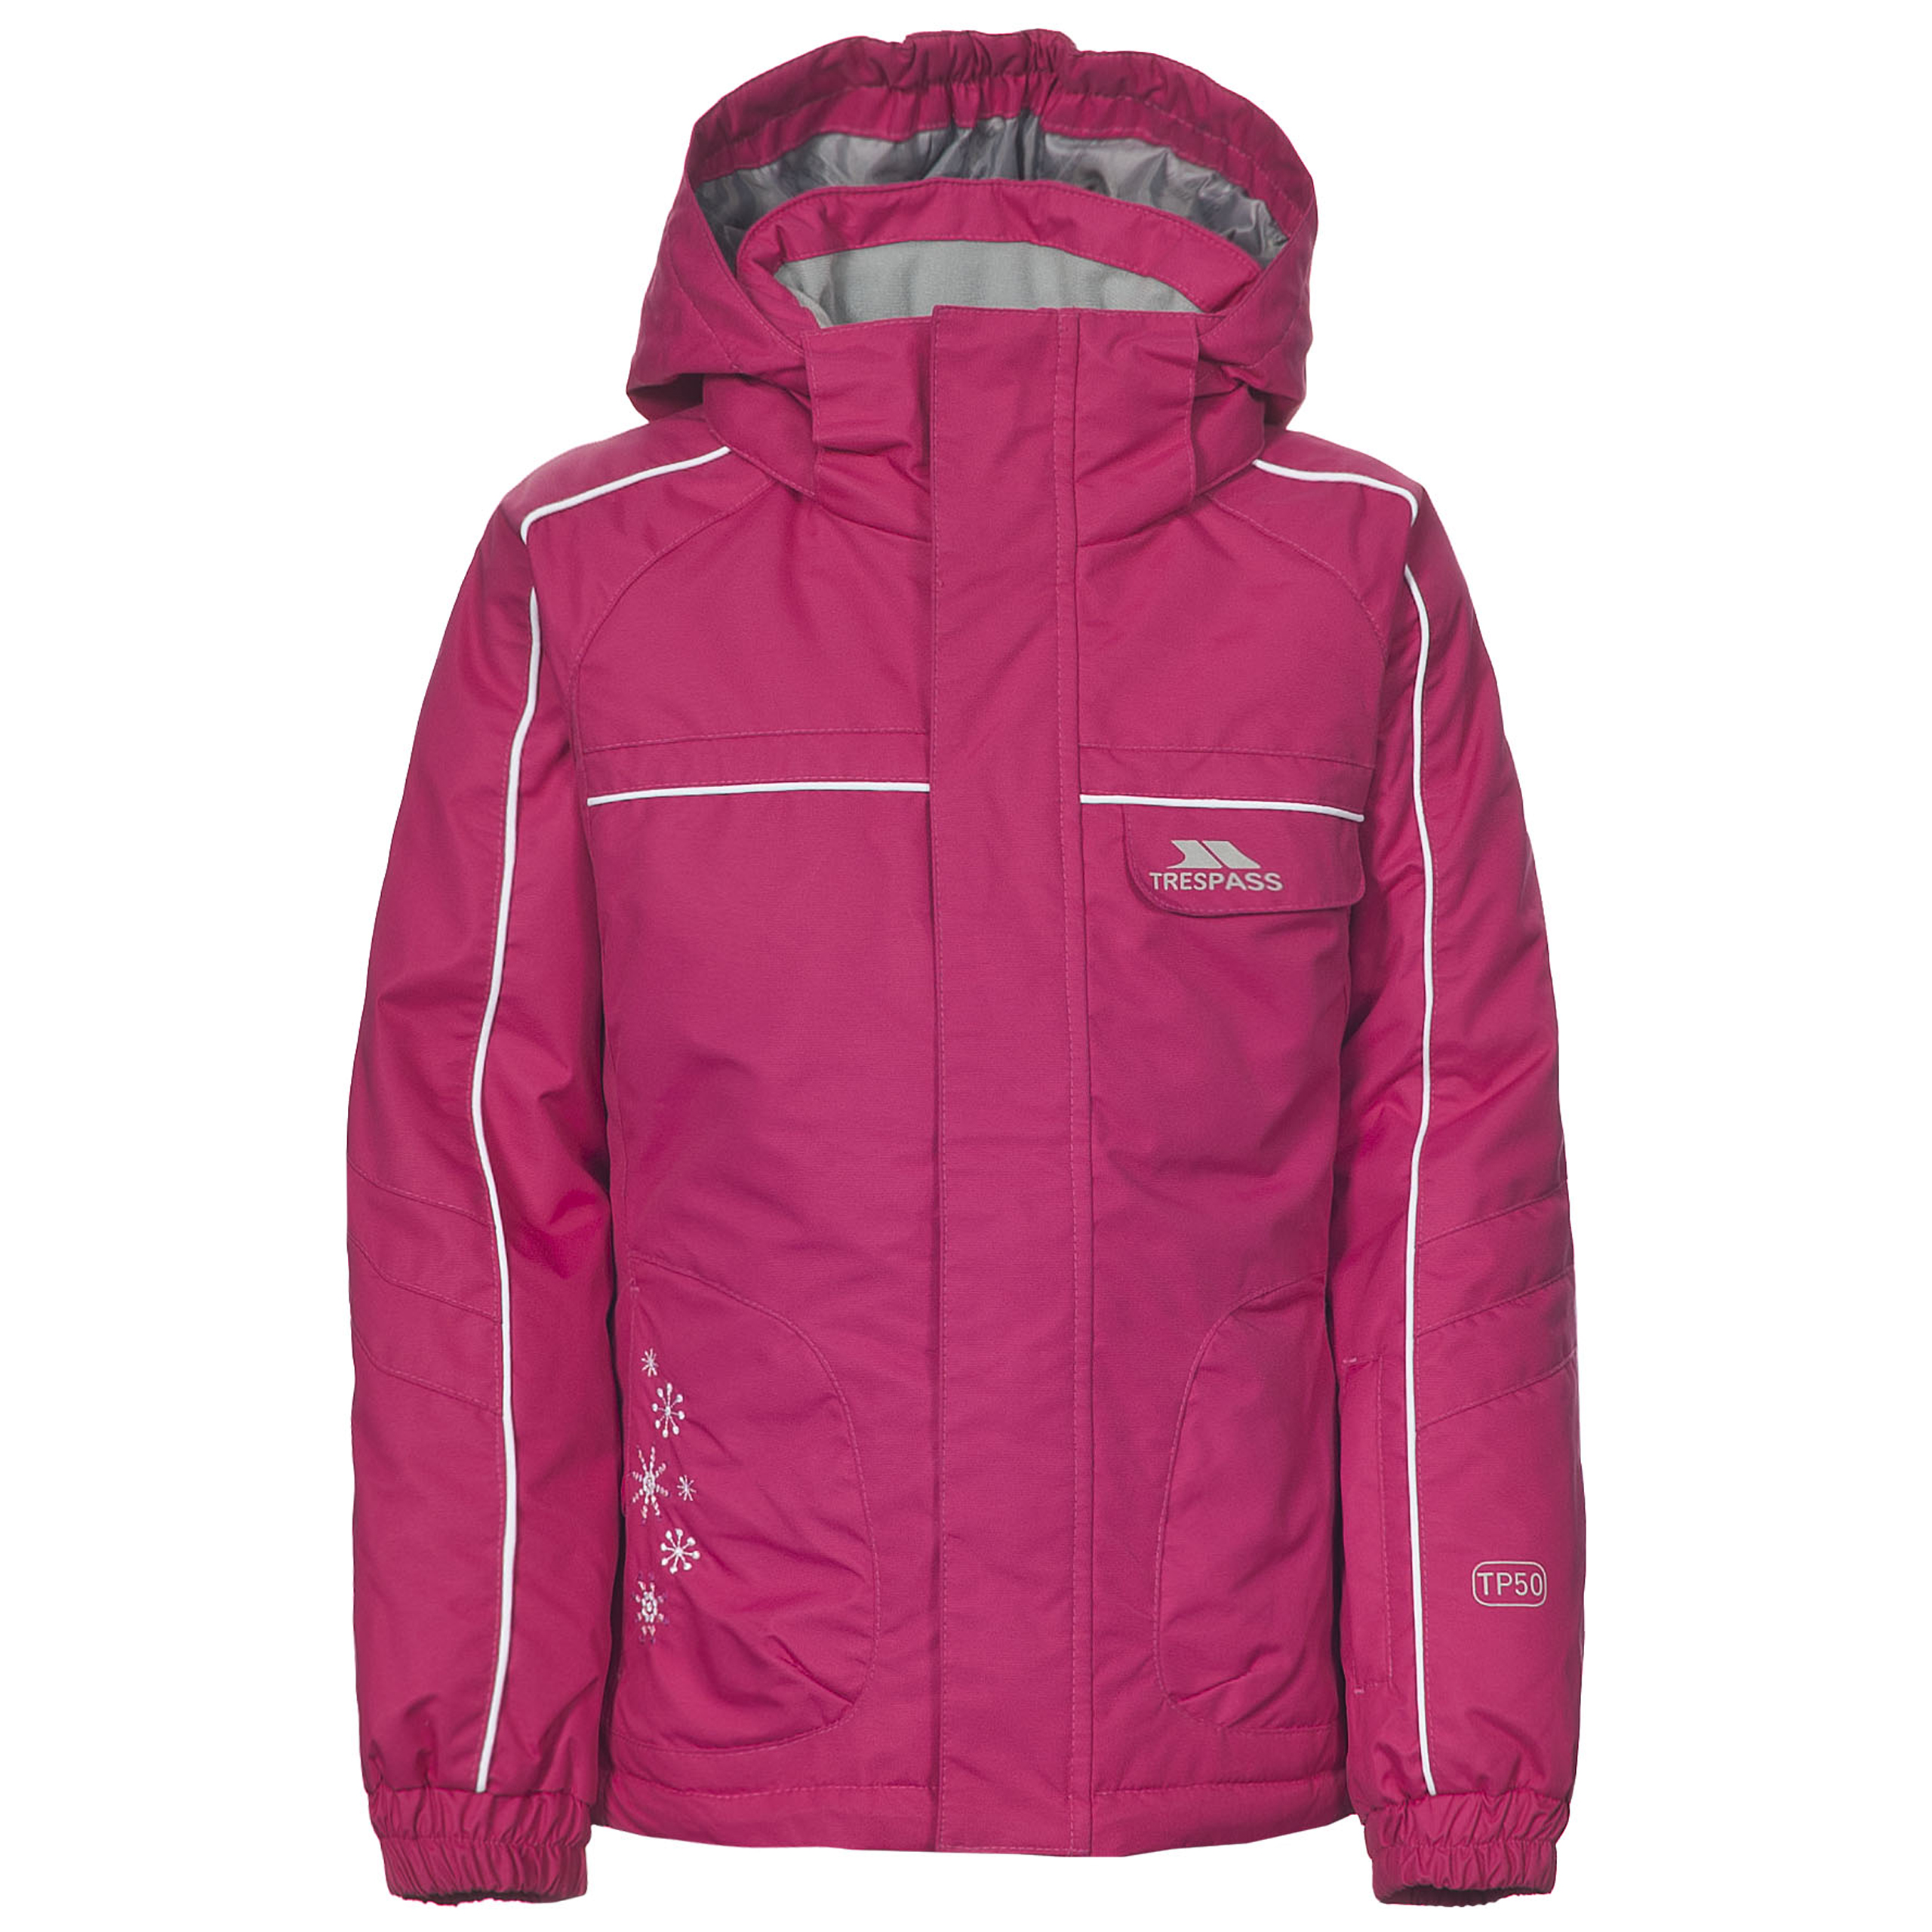 Kids Snowboard Jackets in stock and ship out fast from The House Boardshop. Girls Snowboard Jackets from all the best brands in the industry like Burton, Foursquare, Roxy and Sessions.